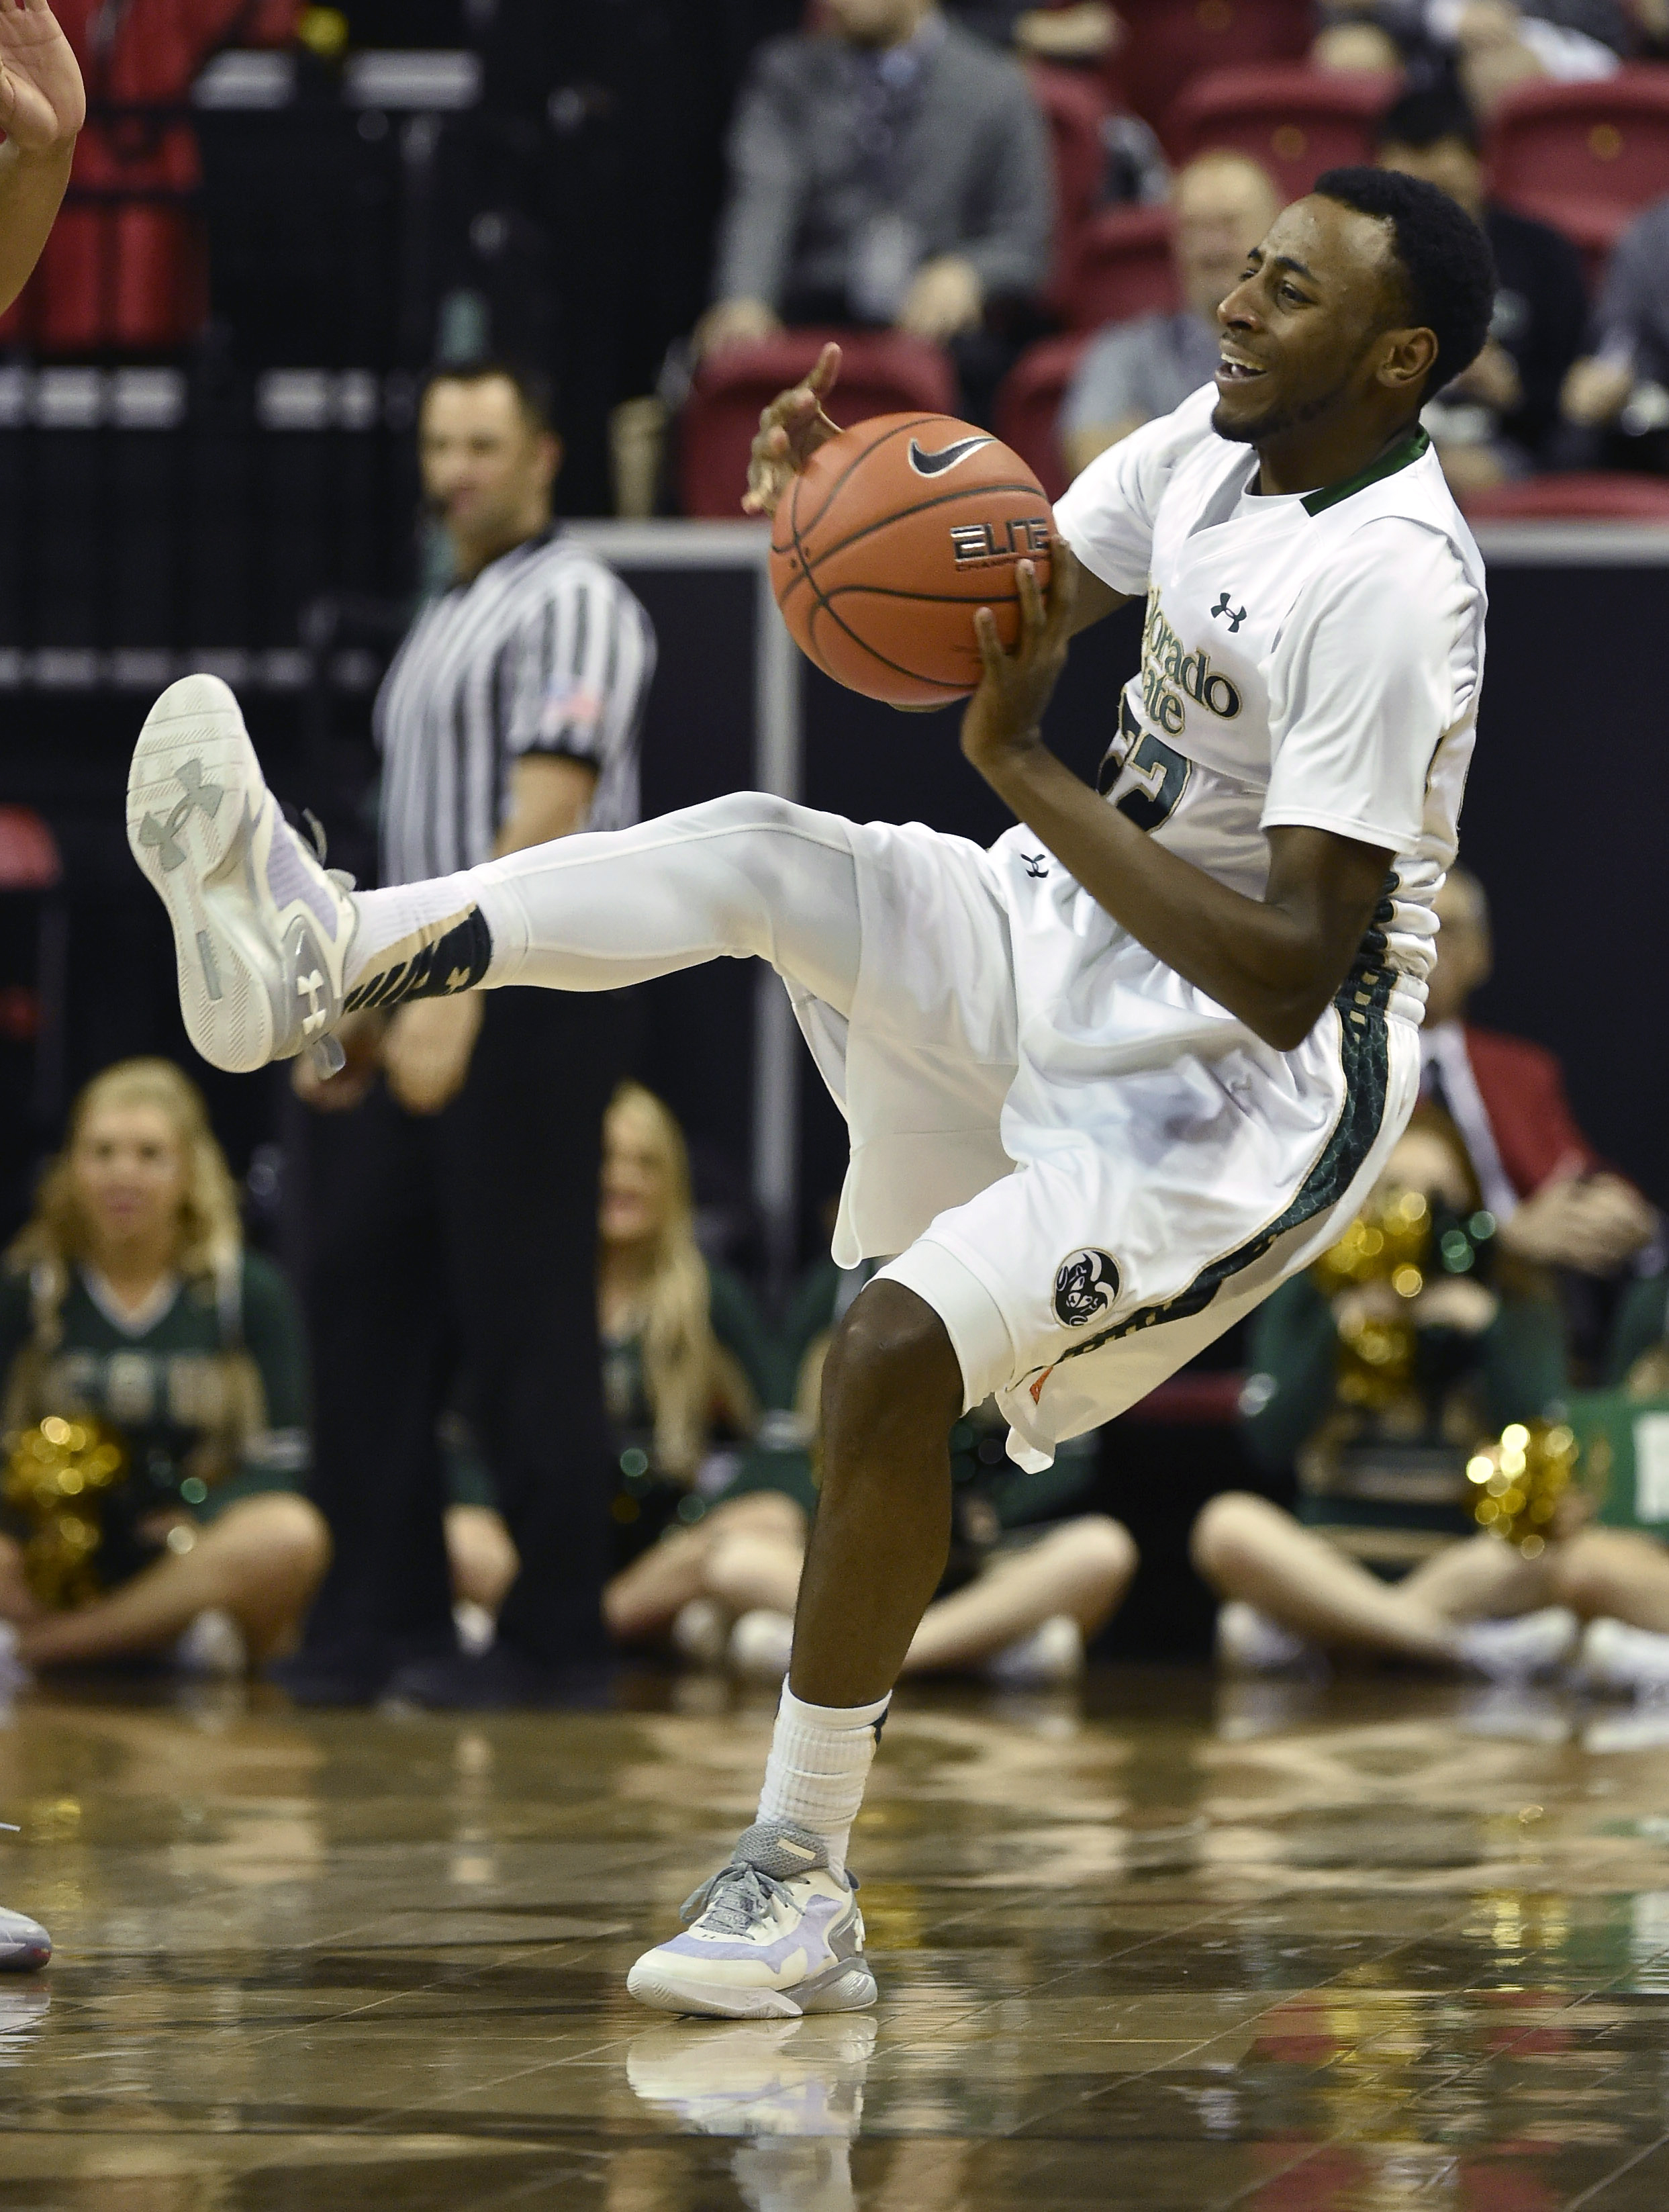 Colorado State's J.D. Paige falls back after being fouled by San Jose State during the second half of an NCAA college basketball game at the Mountain West Conference men's tournament Wednesday, March 9, 2016, in Las Vegas. Colorado State won 80-61. (AP Ph